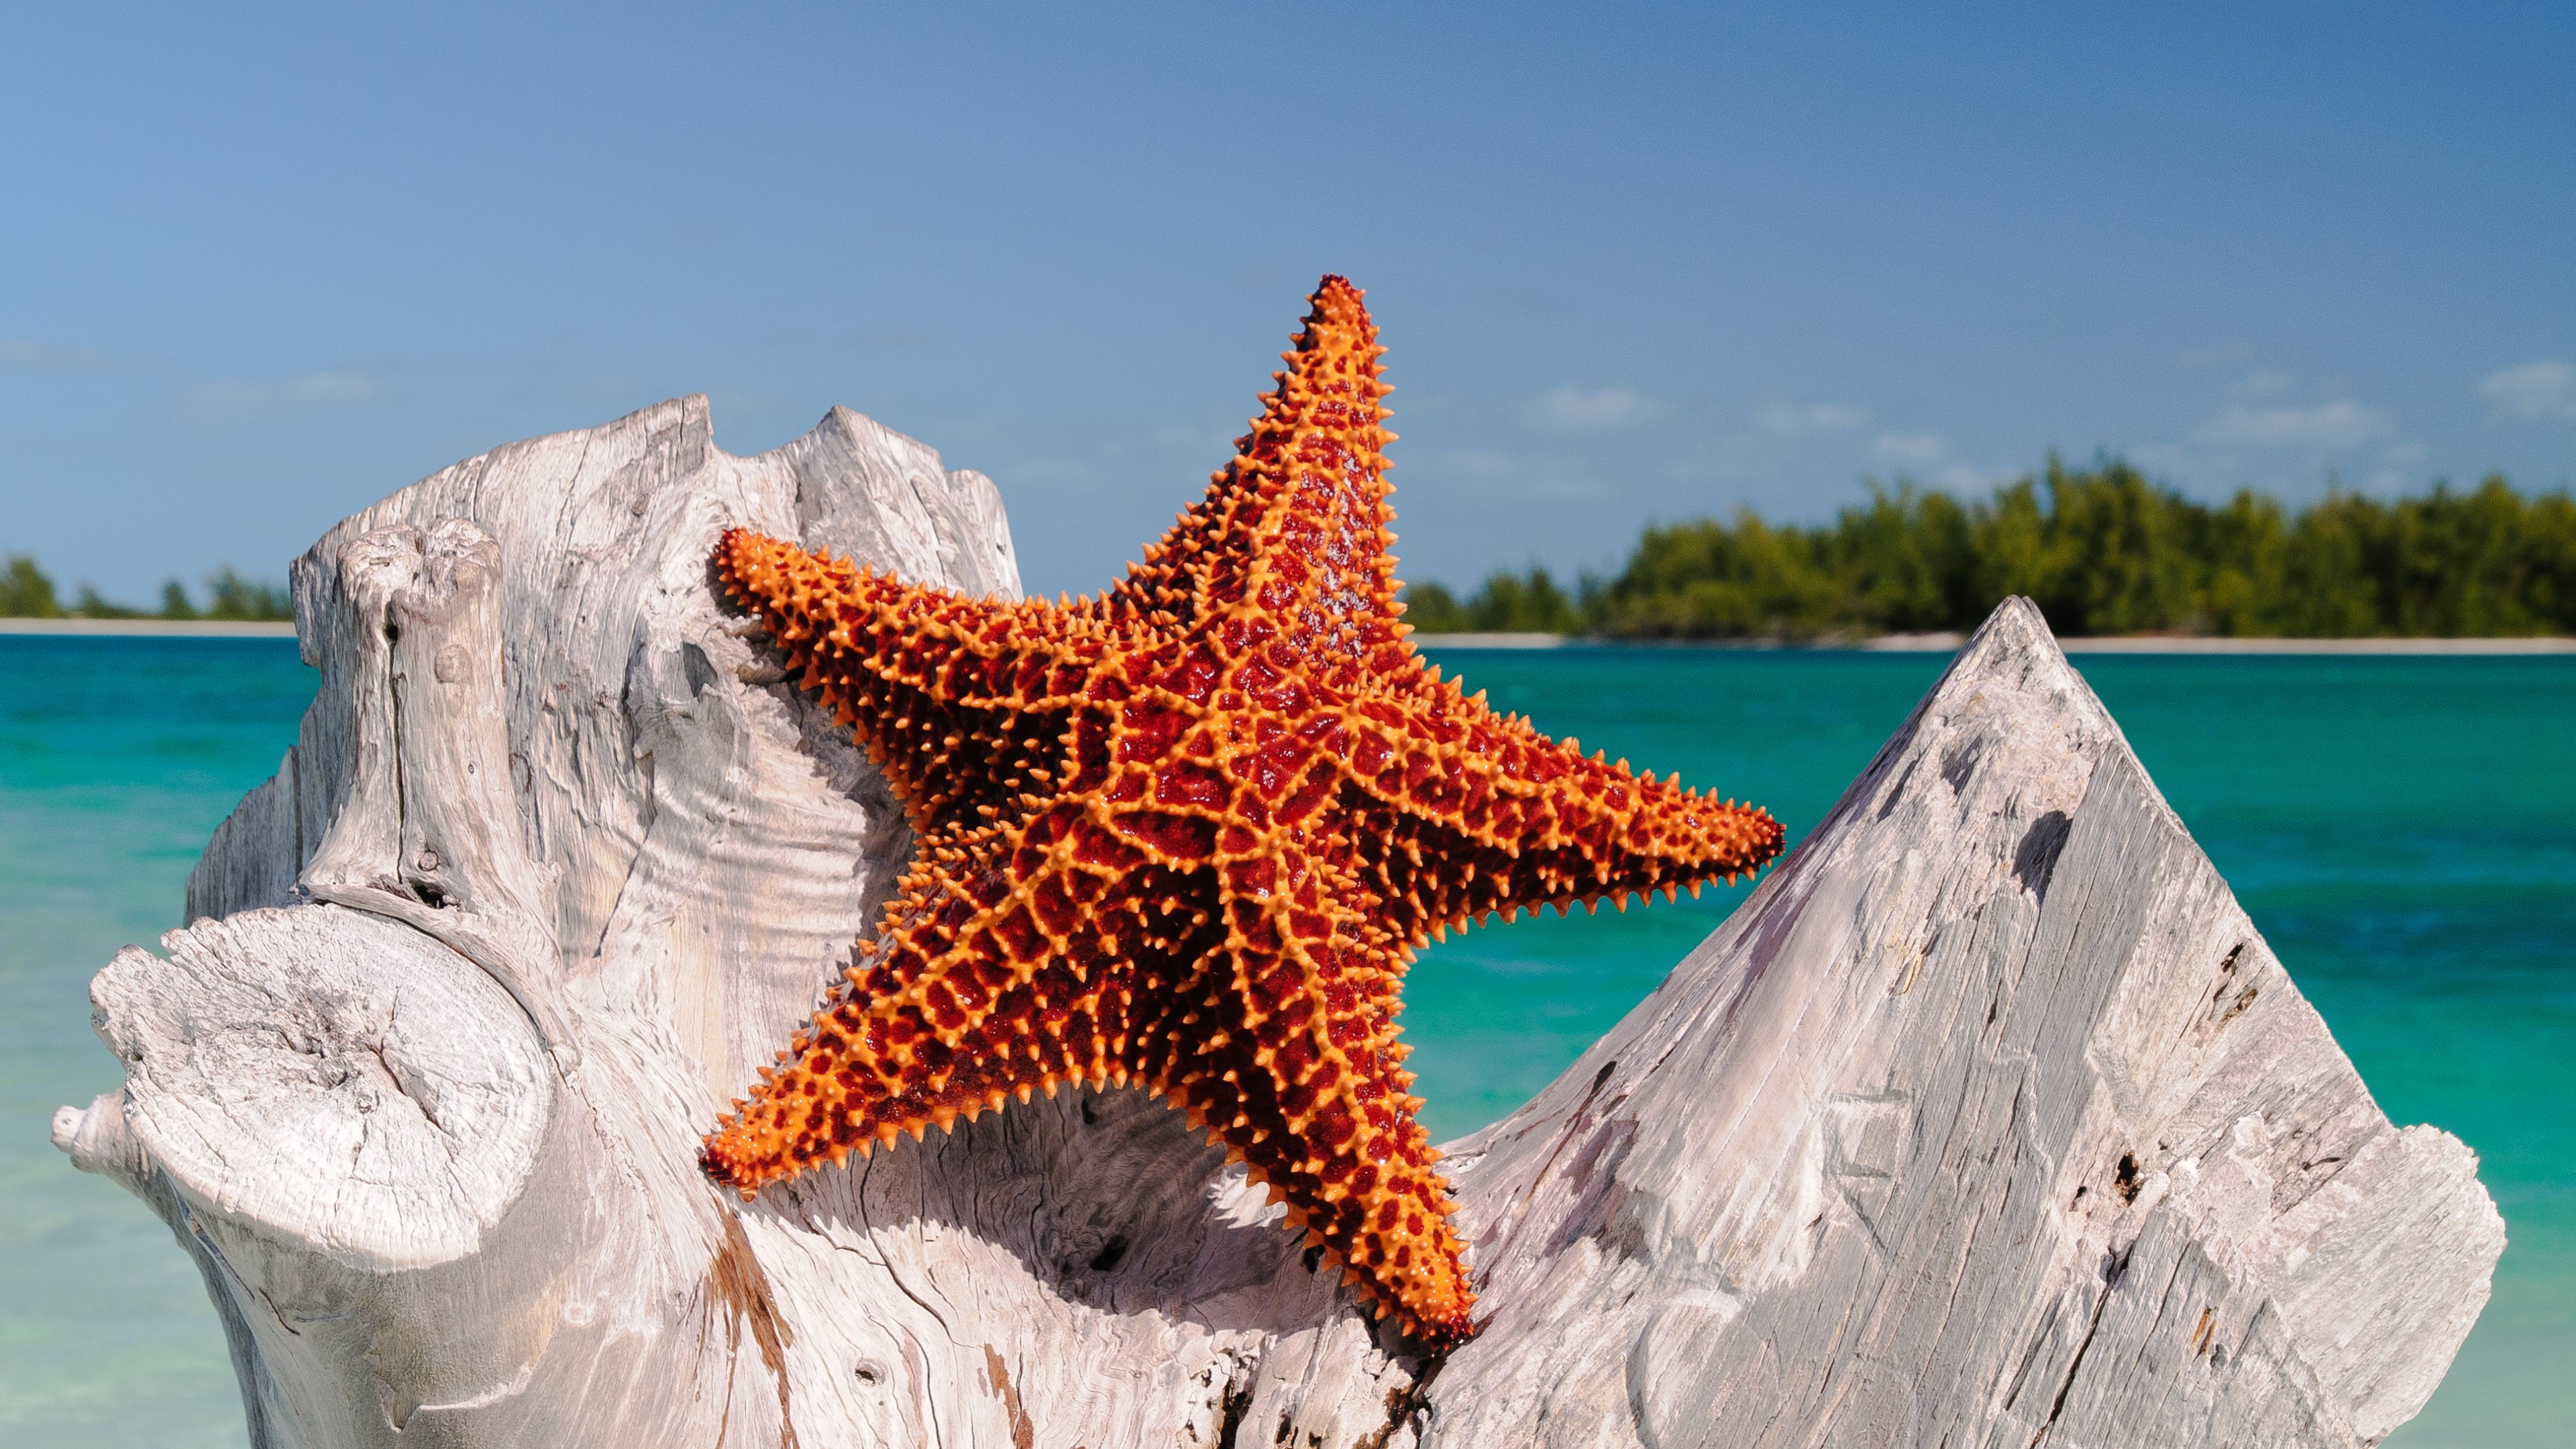 3840x2160 Starfish Wallpapers, Pictures, Images